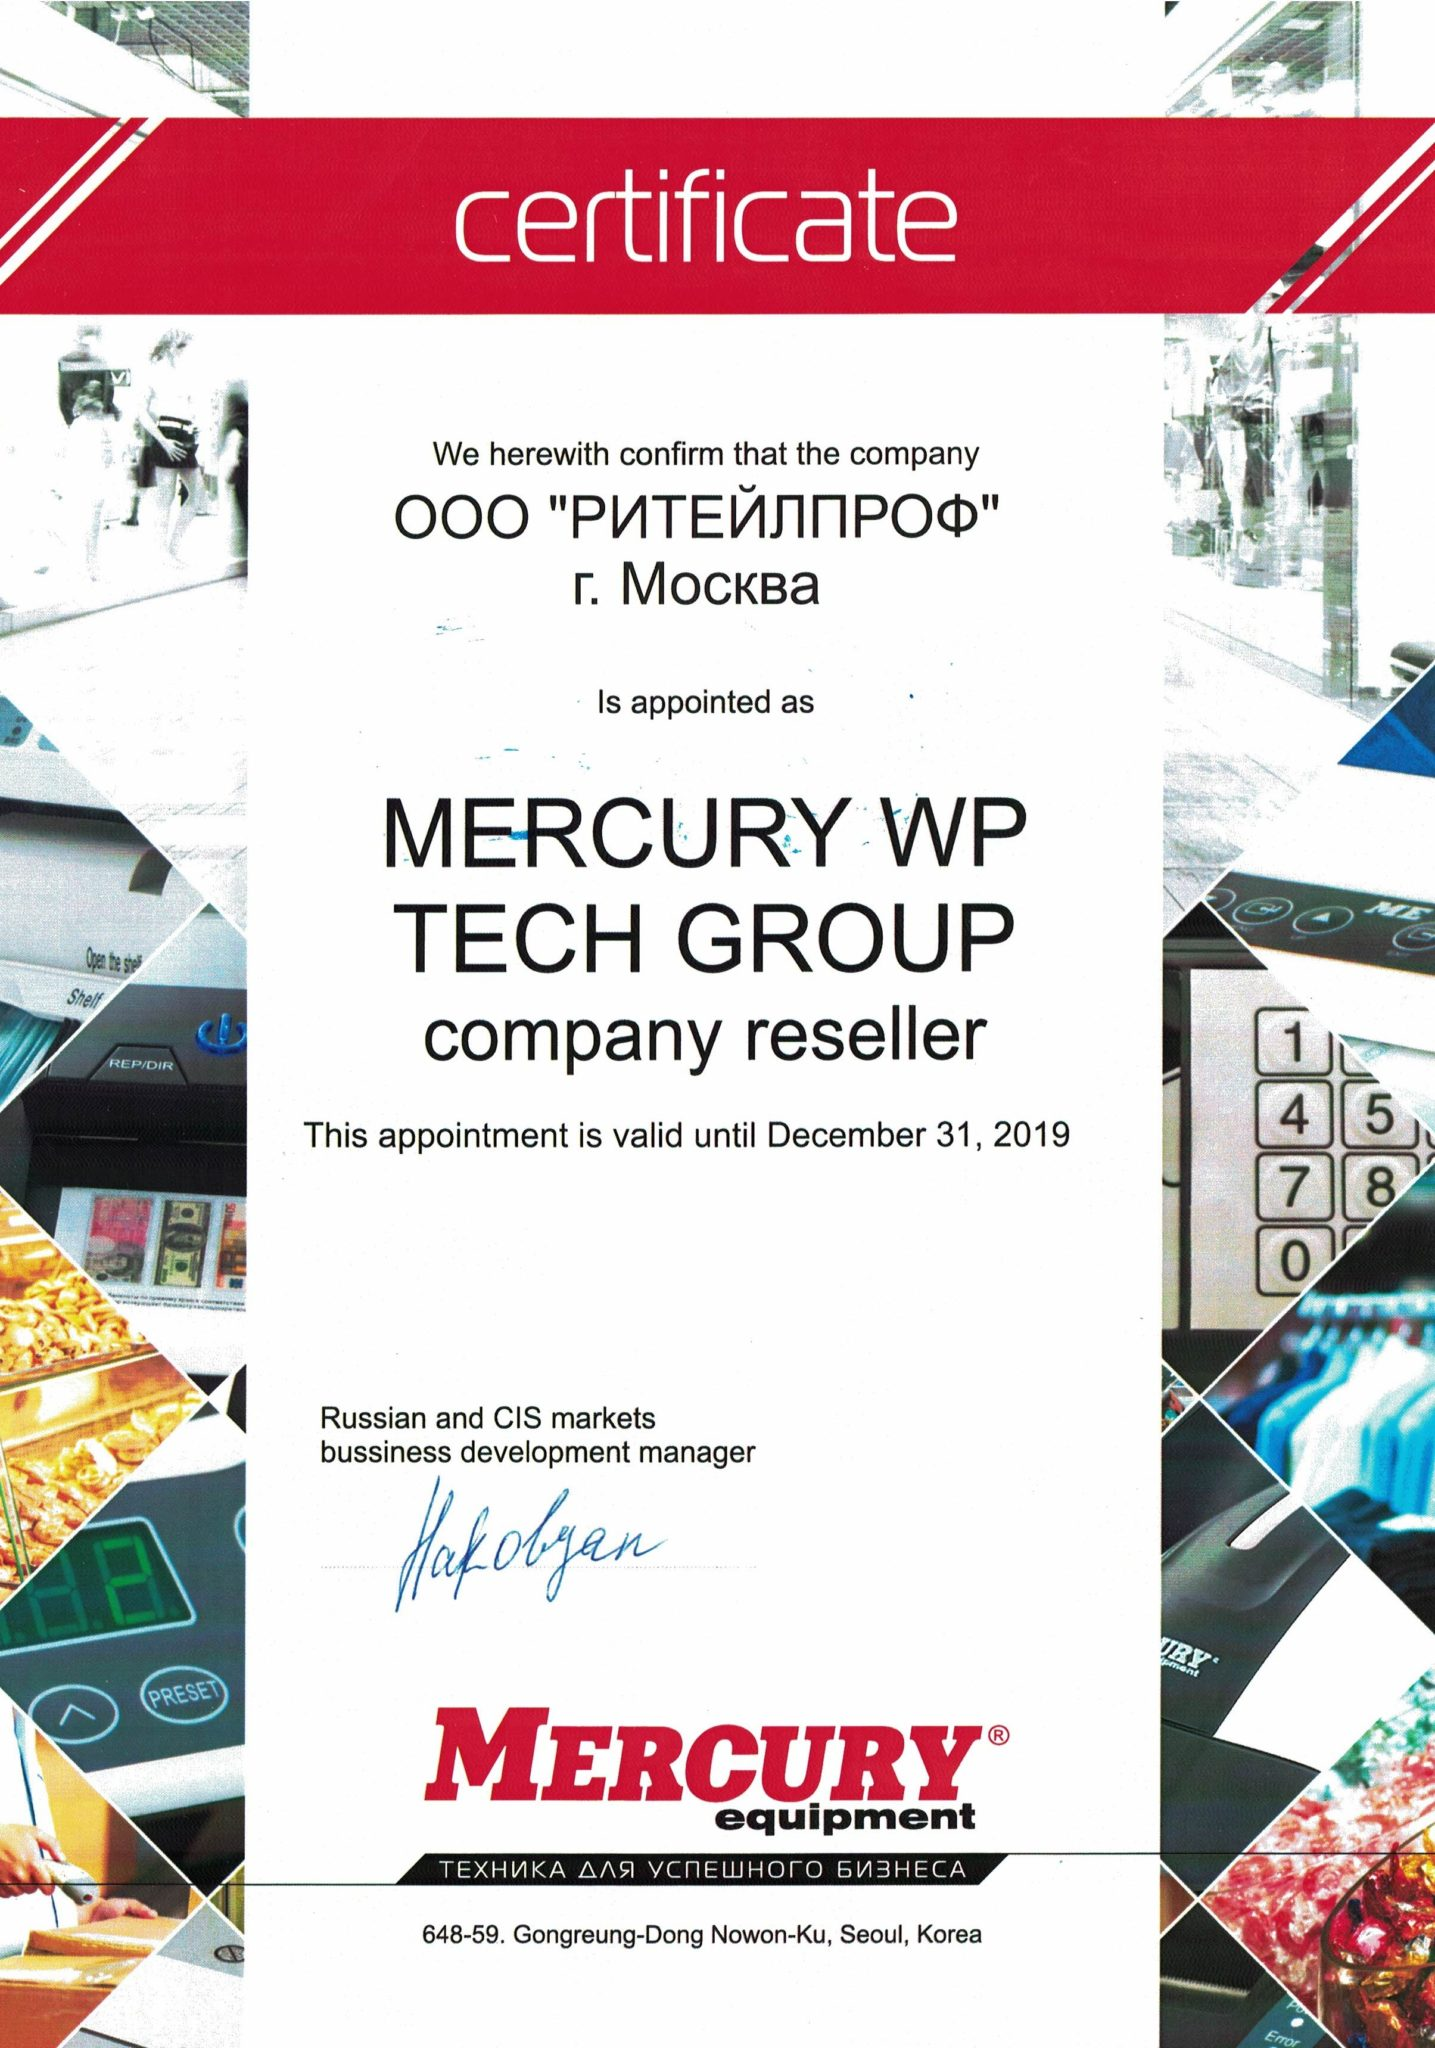 Сертификат Mercury Equipment